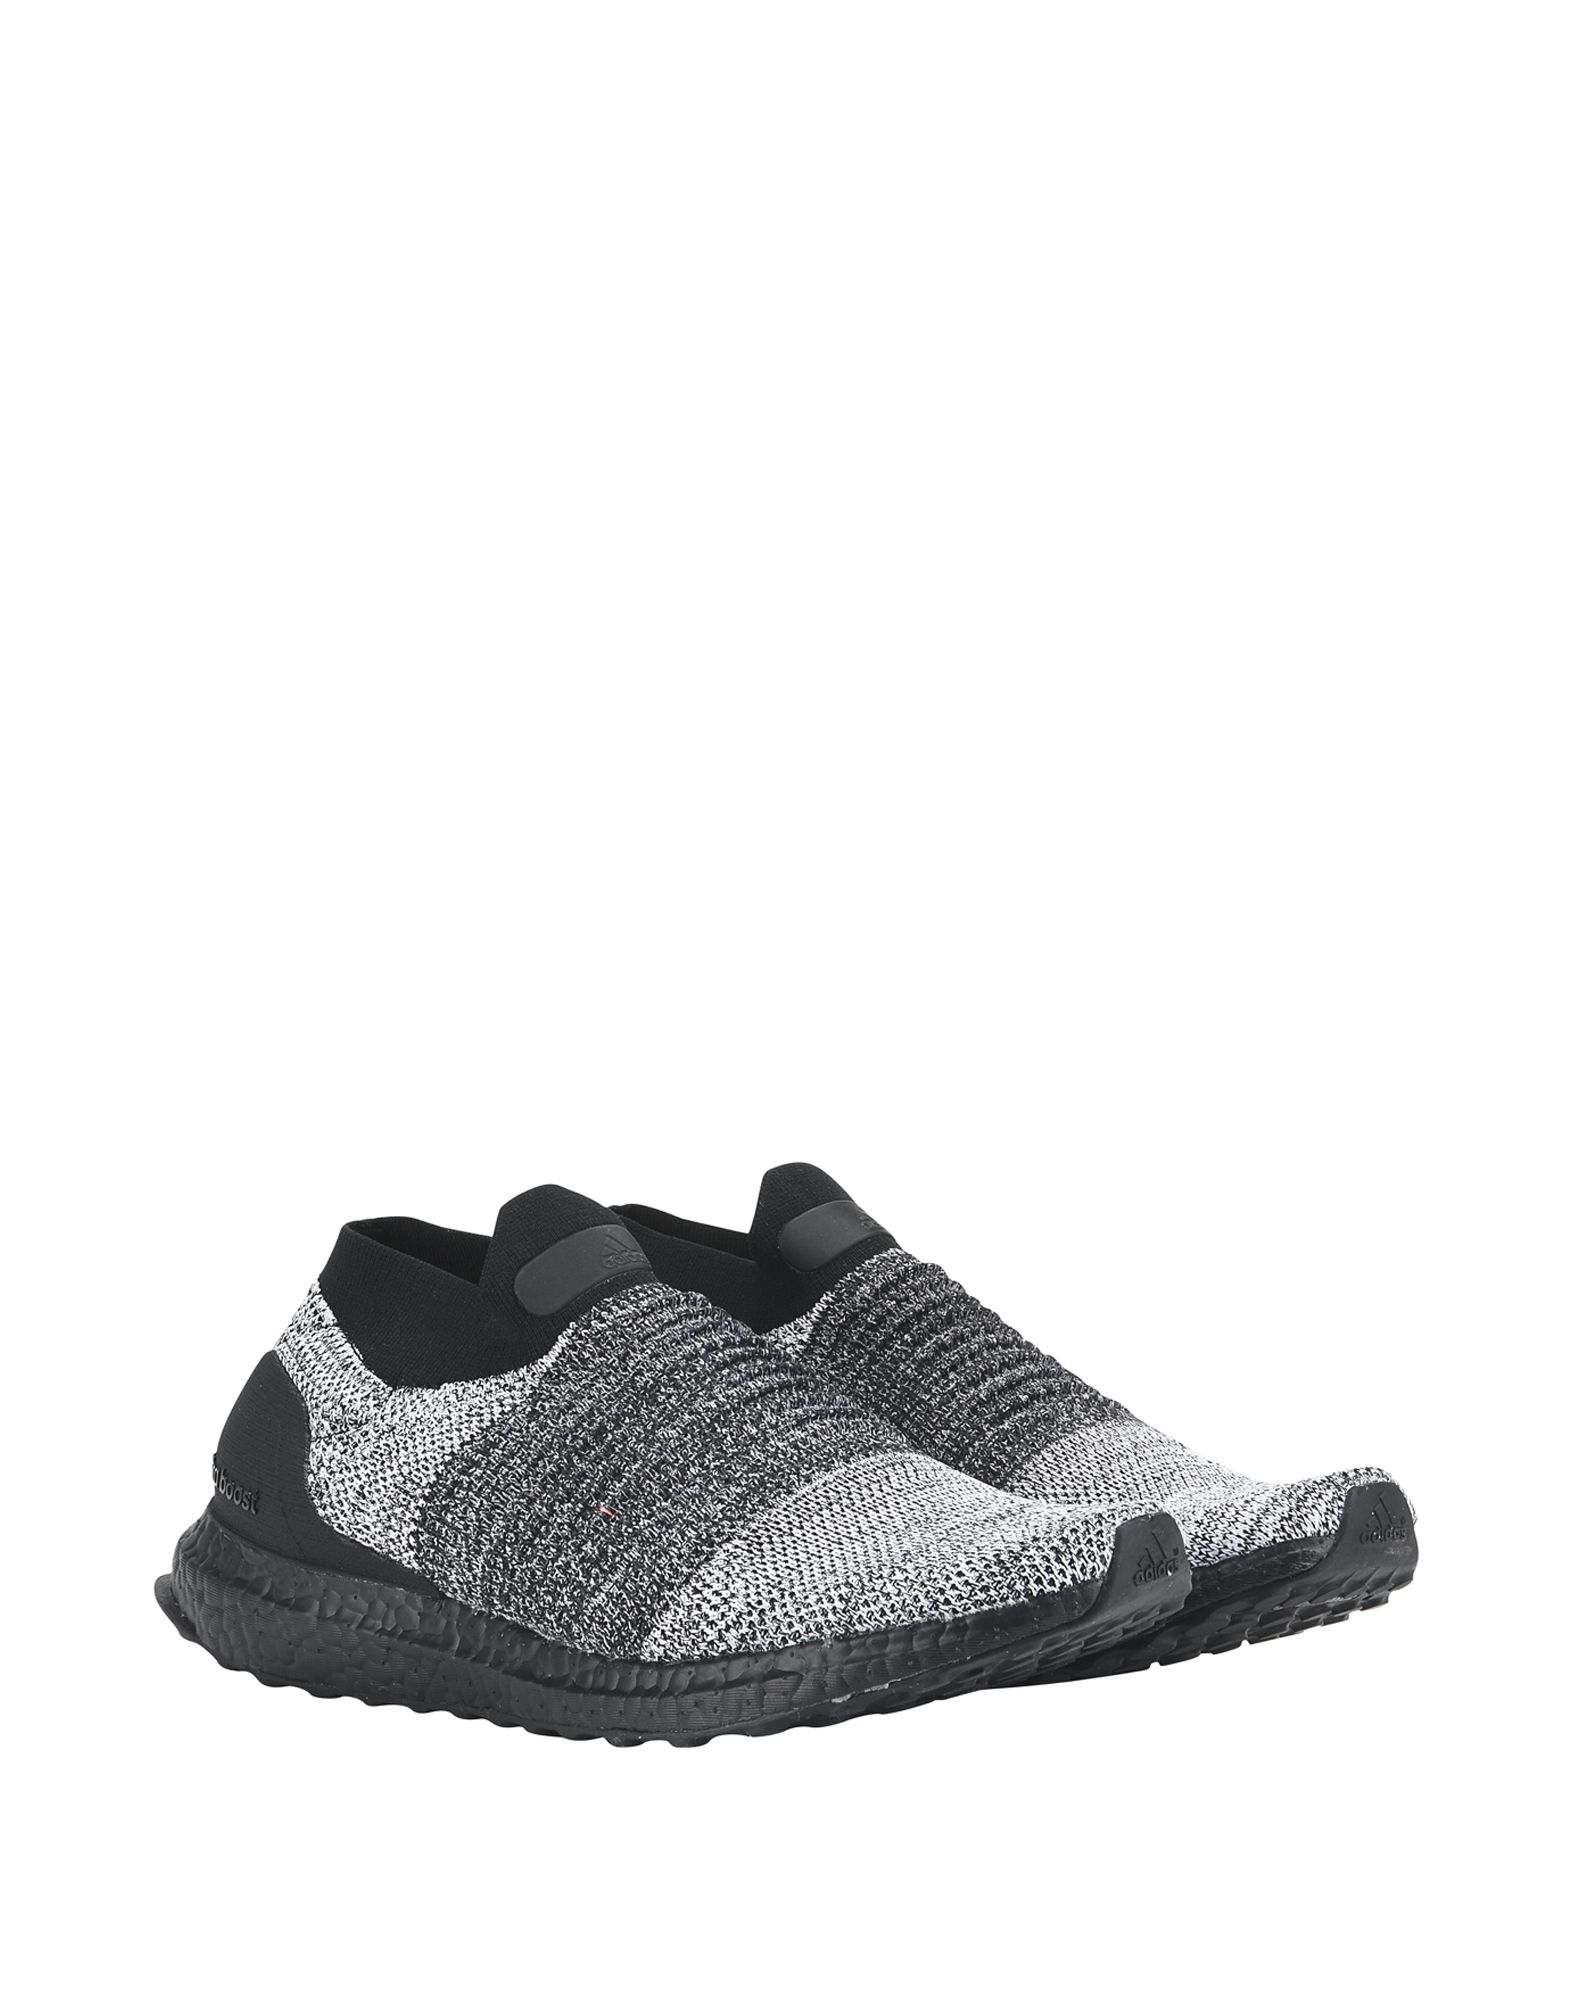 Sneakers Adidas Ultraboost Laceless - Homme - Sneakers Adidas sur